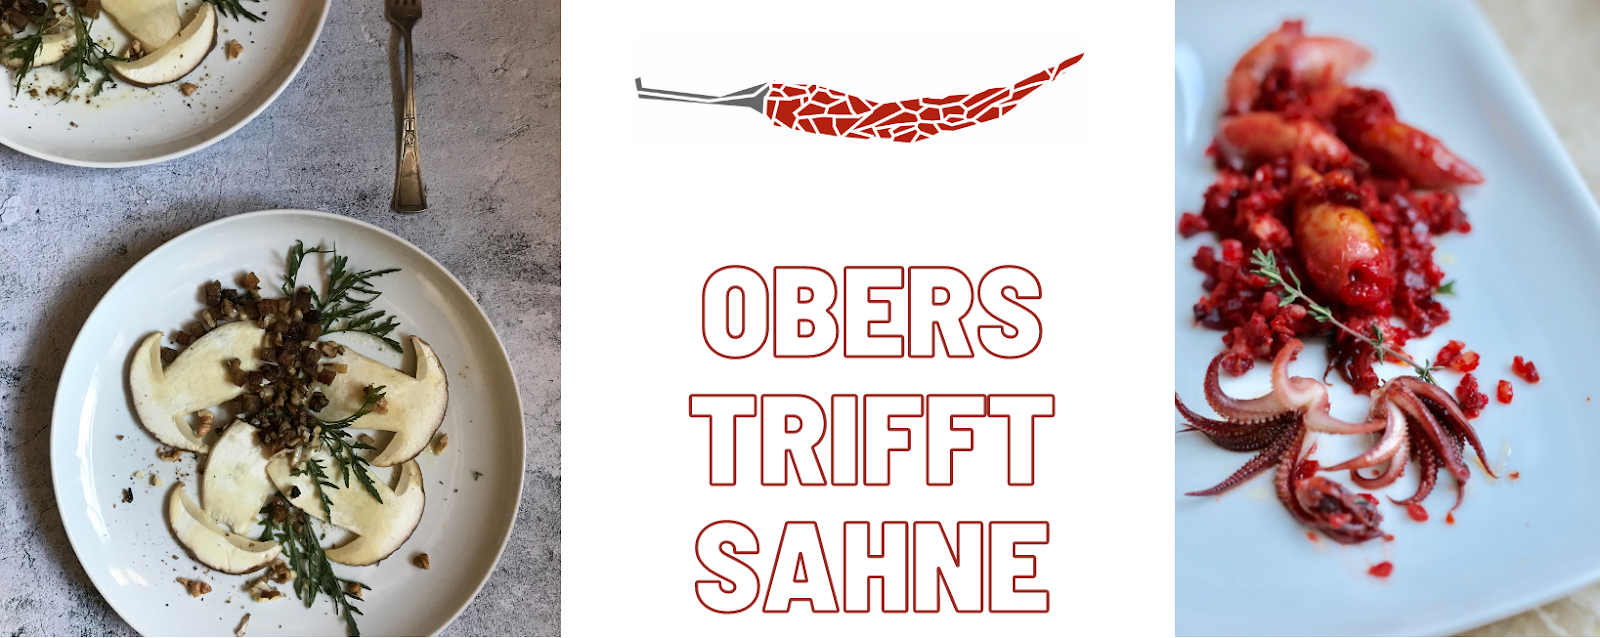 Foodblog Obers trifft Sahne